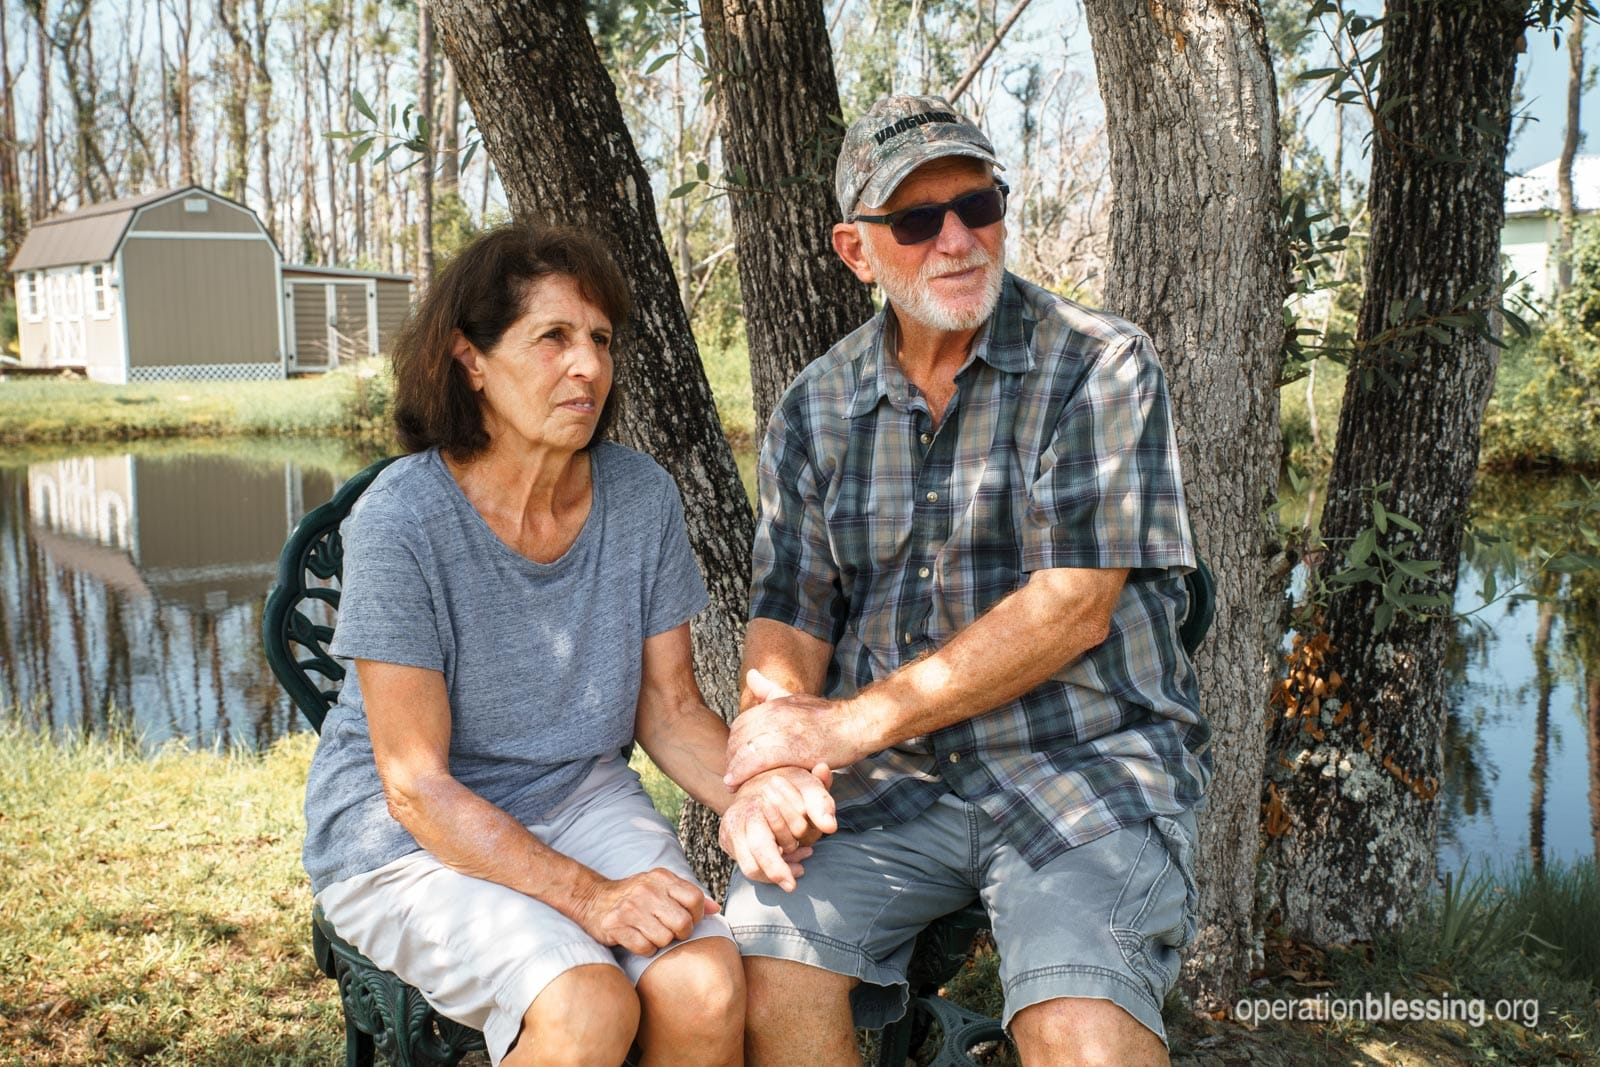 Almost a year later, the Petersons still need help with their home in Florida.